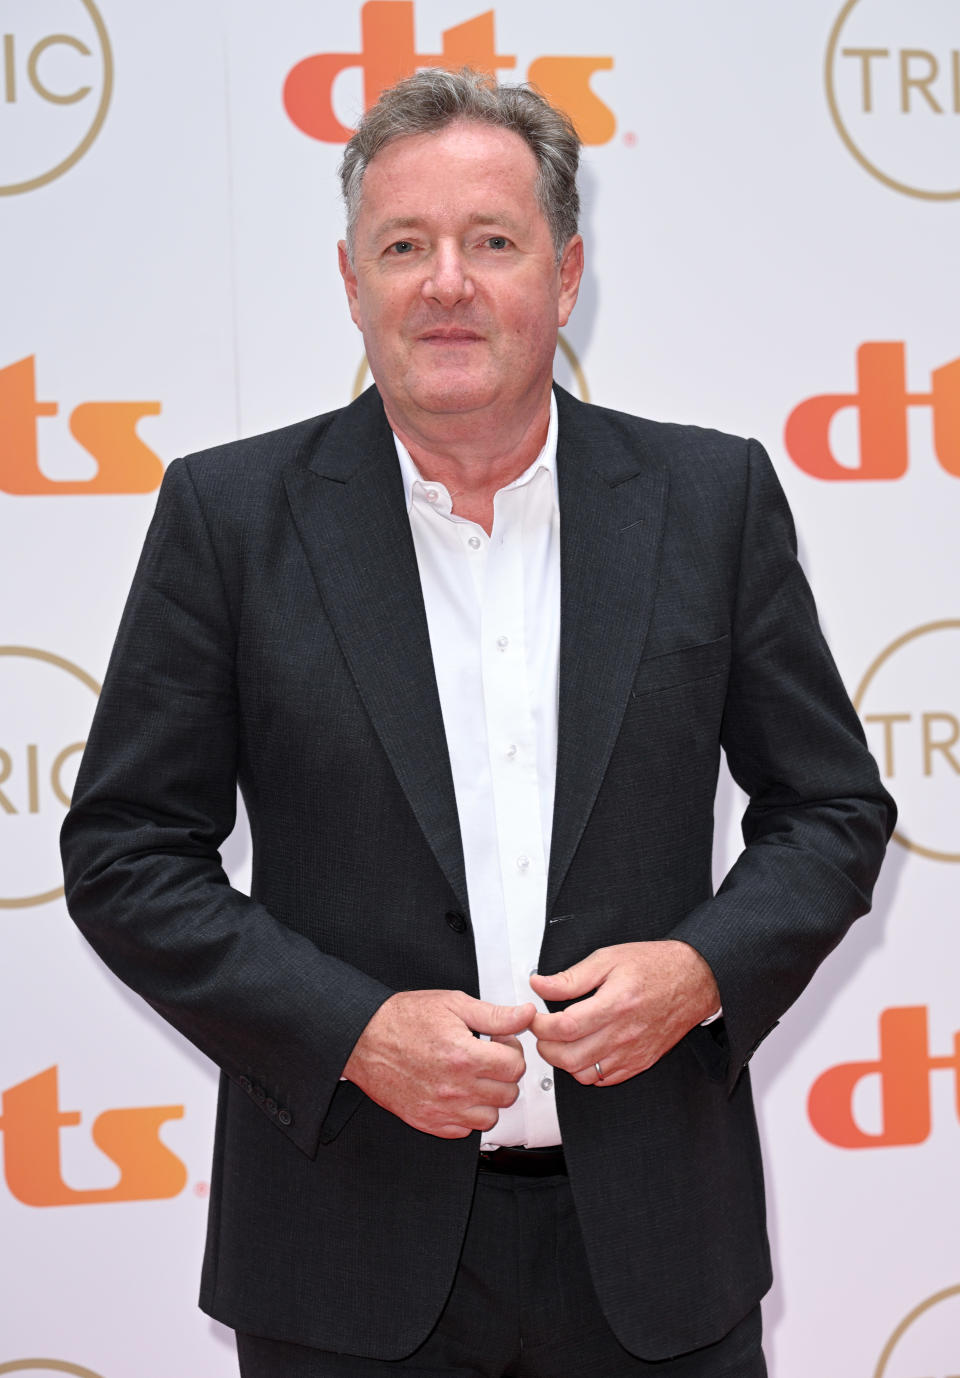 LONDON, ENGLAND - SEPTEMBER 15: Piers Morgan attends The TRIC Awards 2021 at 8 Northumberland Avenue on September 15, 2021 in London, England. (Photo by Karwai Tang/WireImage)